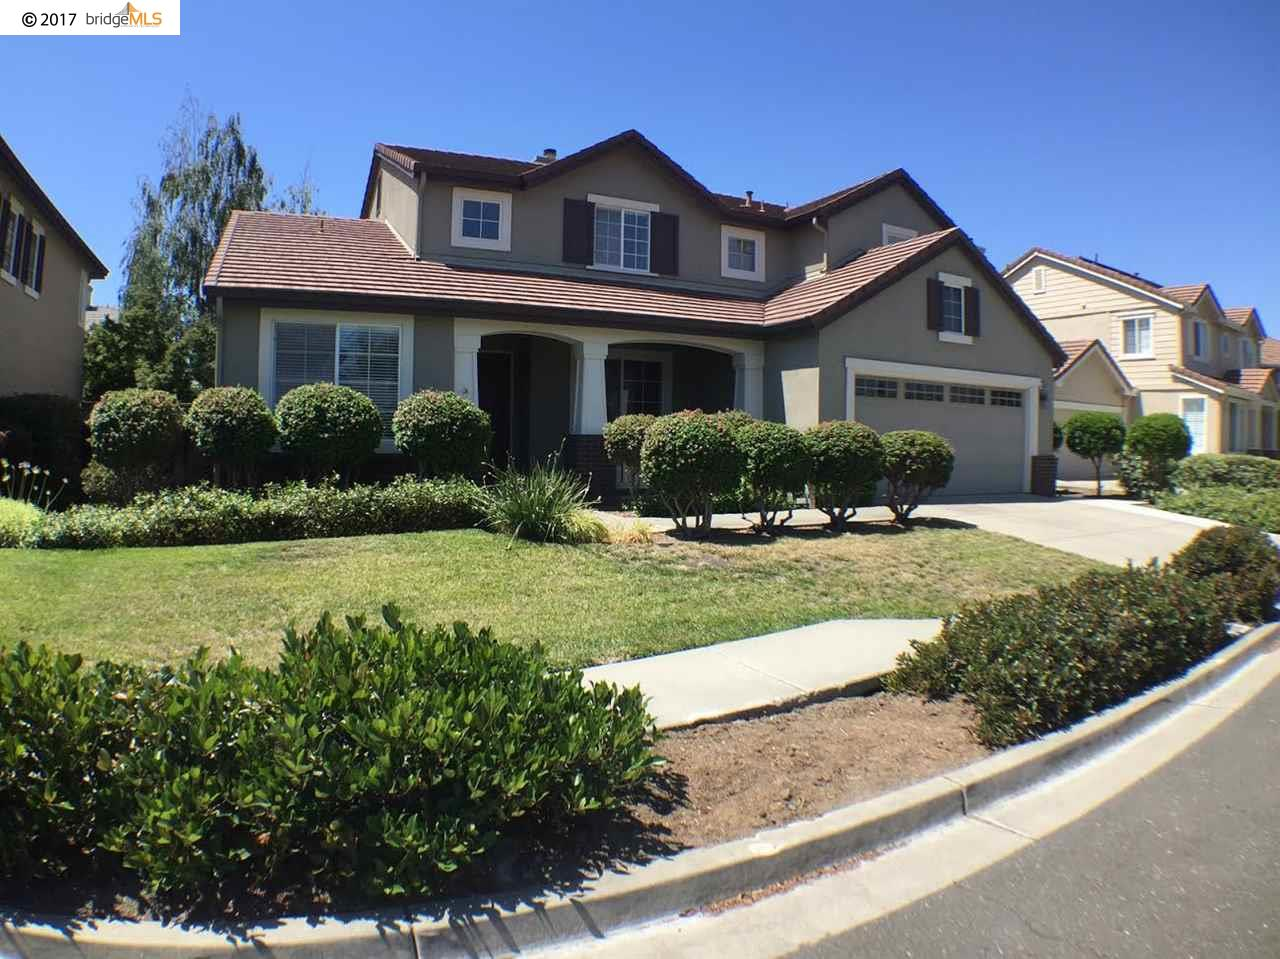 Single Family Home for Rent at 4579 Meyer Park Circle Fremont, California 94536 United States